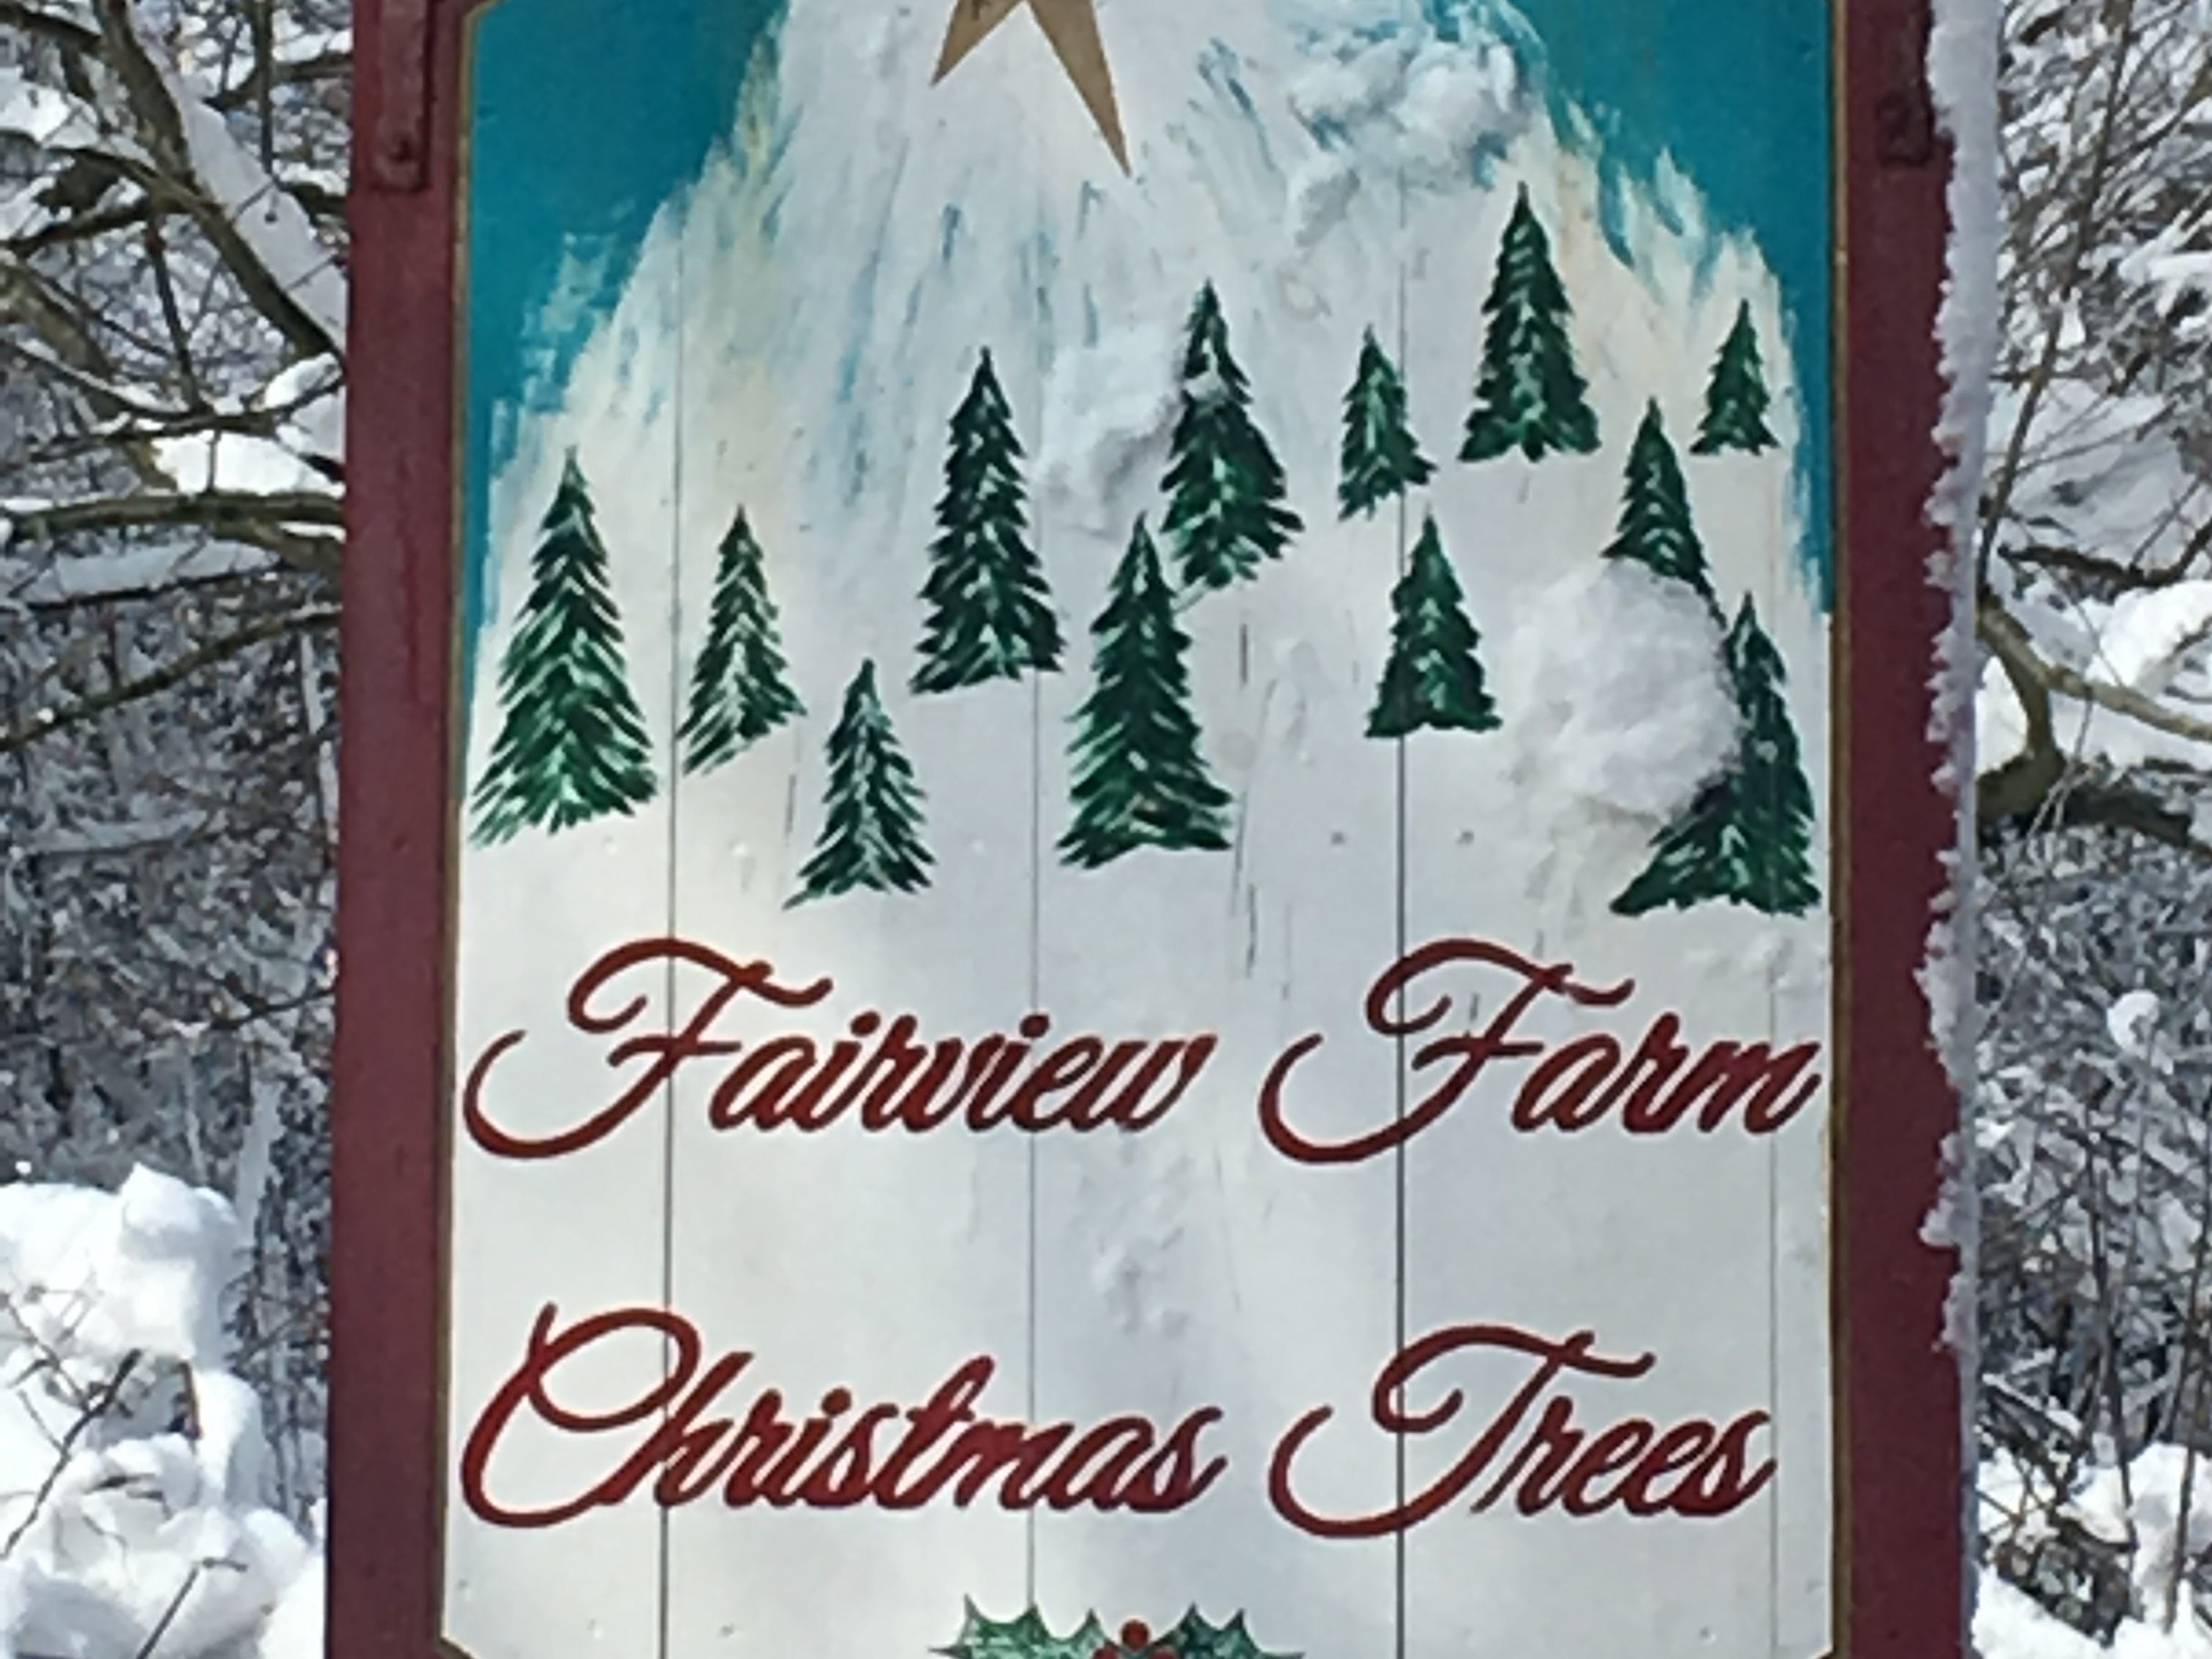 Fairview Farm Christmas Trees, 91 E. Mill Rd., Long Valley. Fairview Farm has cut-your-own Concolor Fir, Fraser Fir, Canaan Fir, Balsam Fir and Balsam-Fraser Hybrid Fir. Mrs. Claus frequently stops by with hot cocoa and farm-baked cookies at their large gift shop filled with decorations, wreaths and stands.